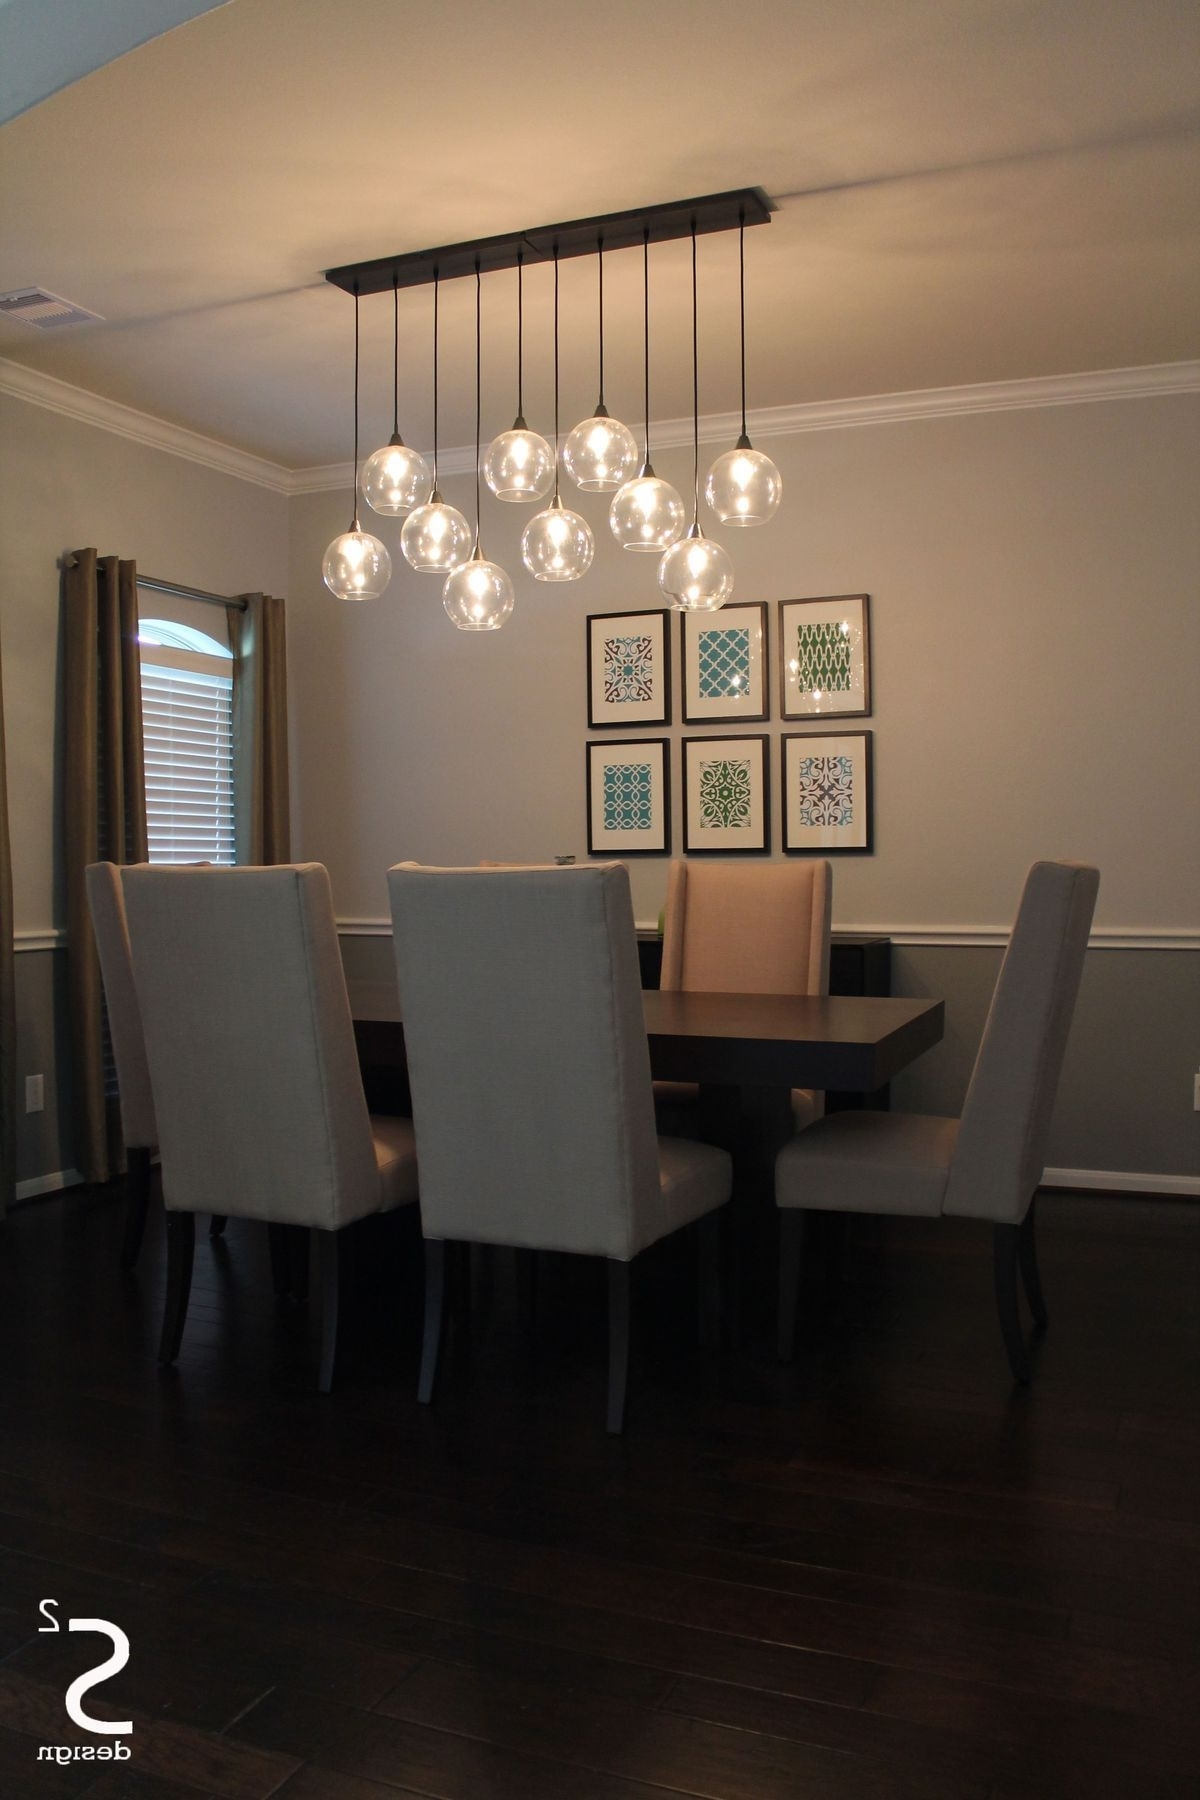 Suspension Lighting Solutions For A Contemporary Dining Room Intended For Popular Over Dining Tables Lighting (View 15 of 25)